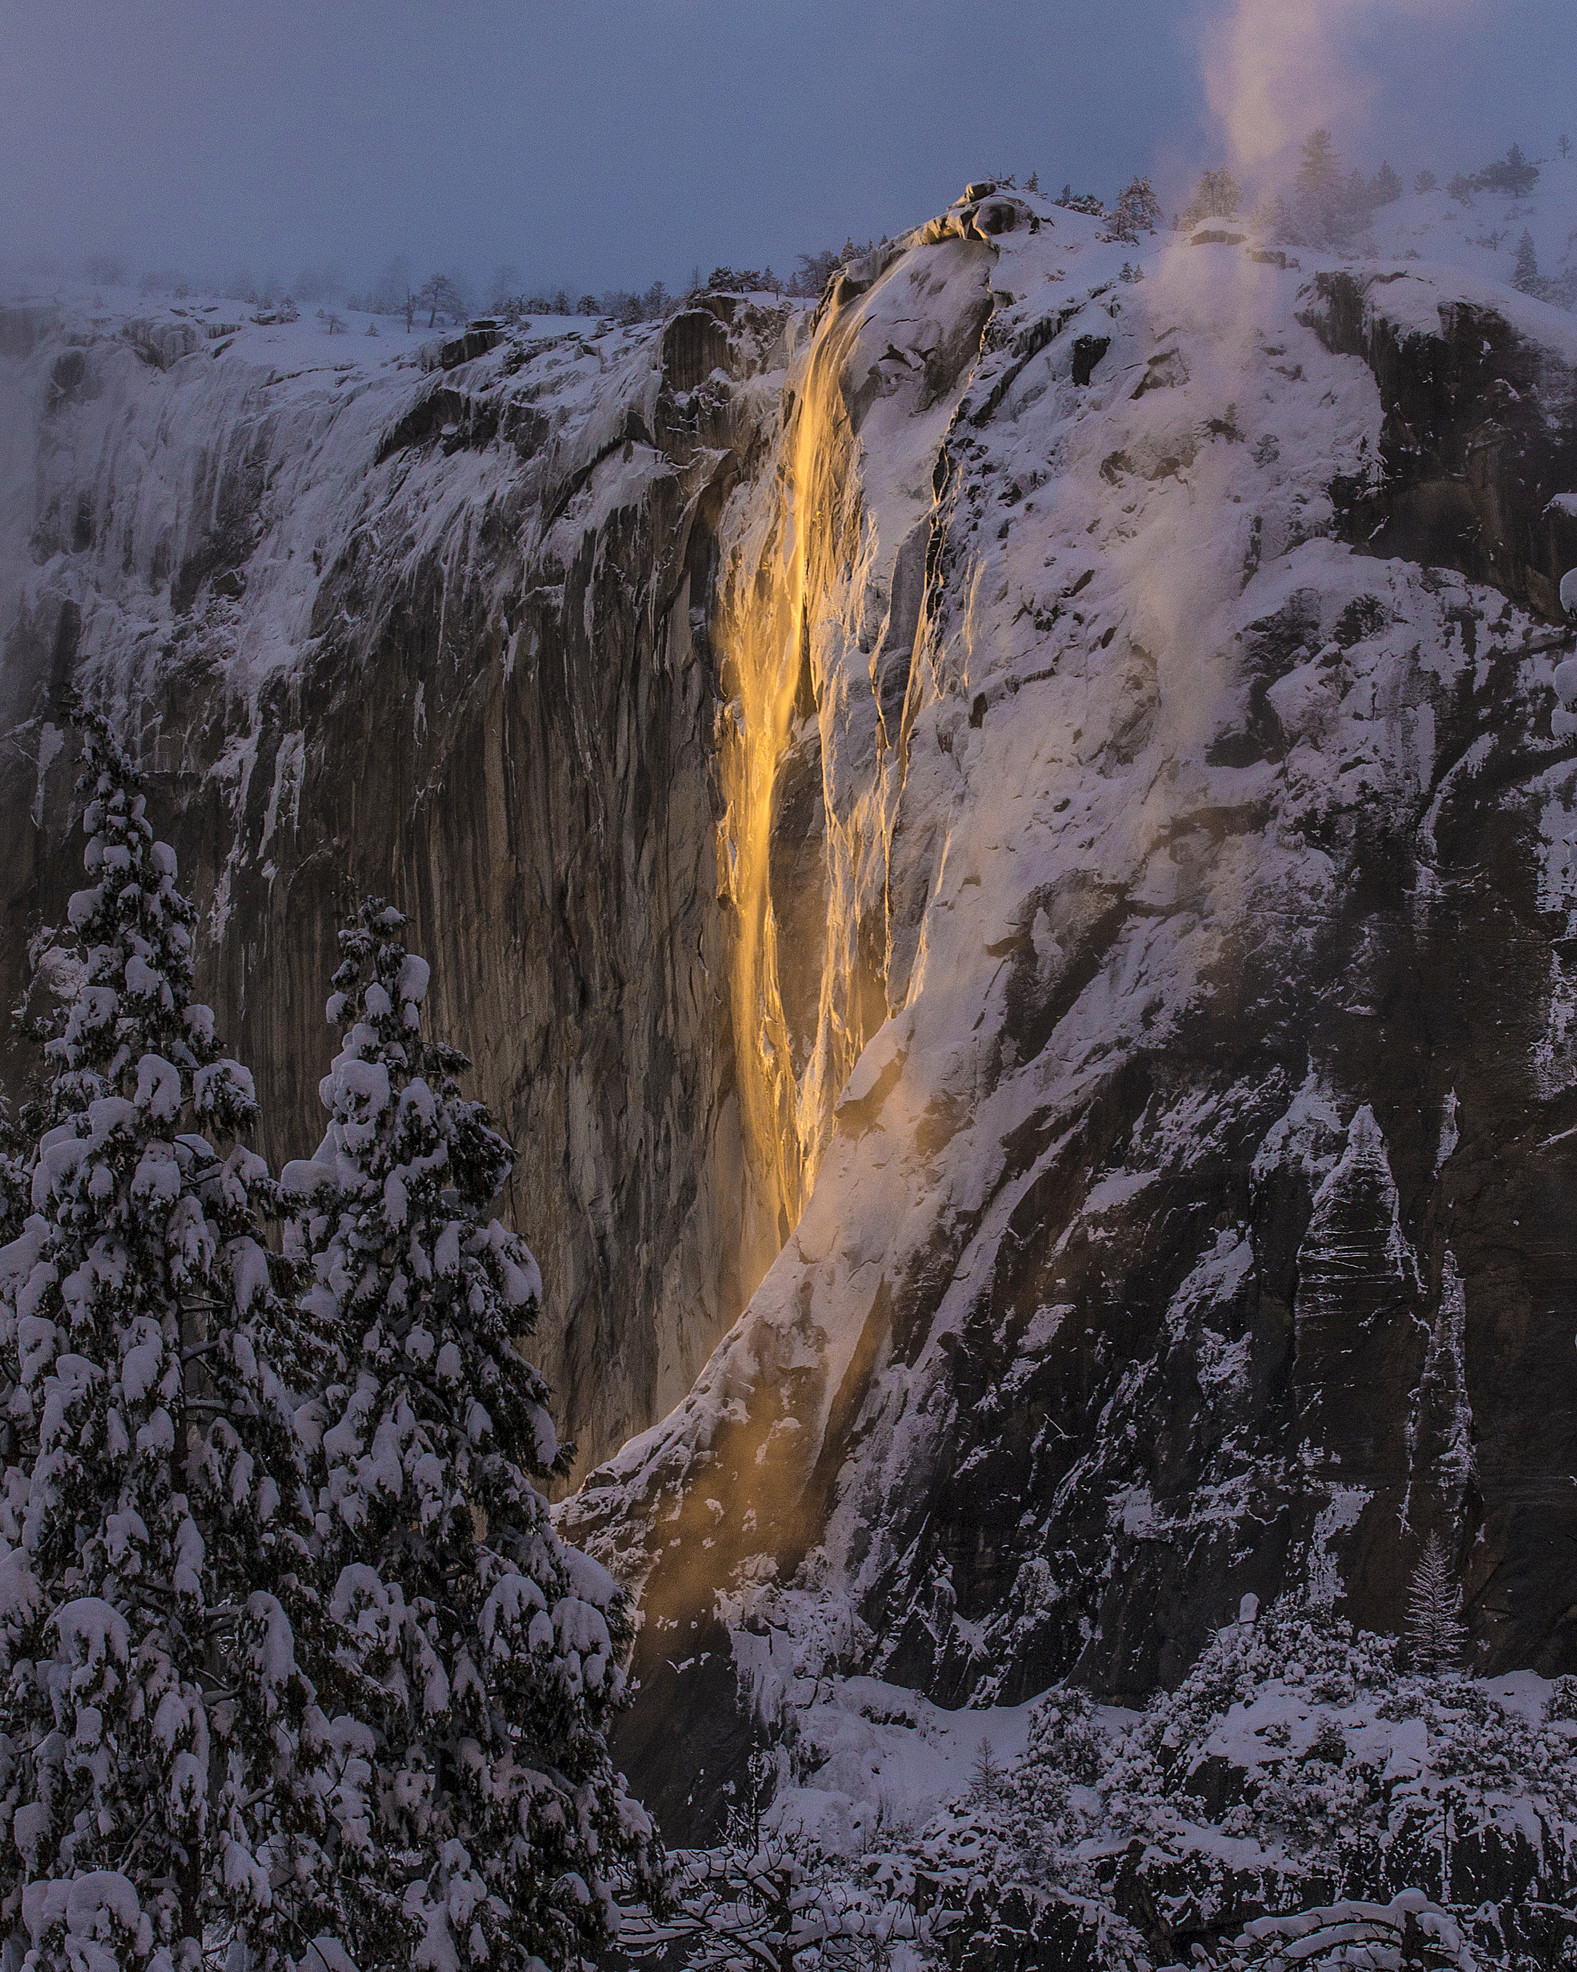 'Firefall' lights up Yosemite National Park